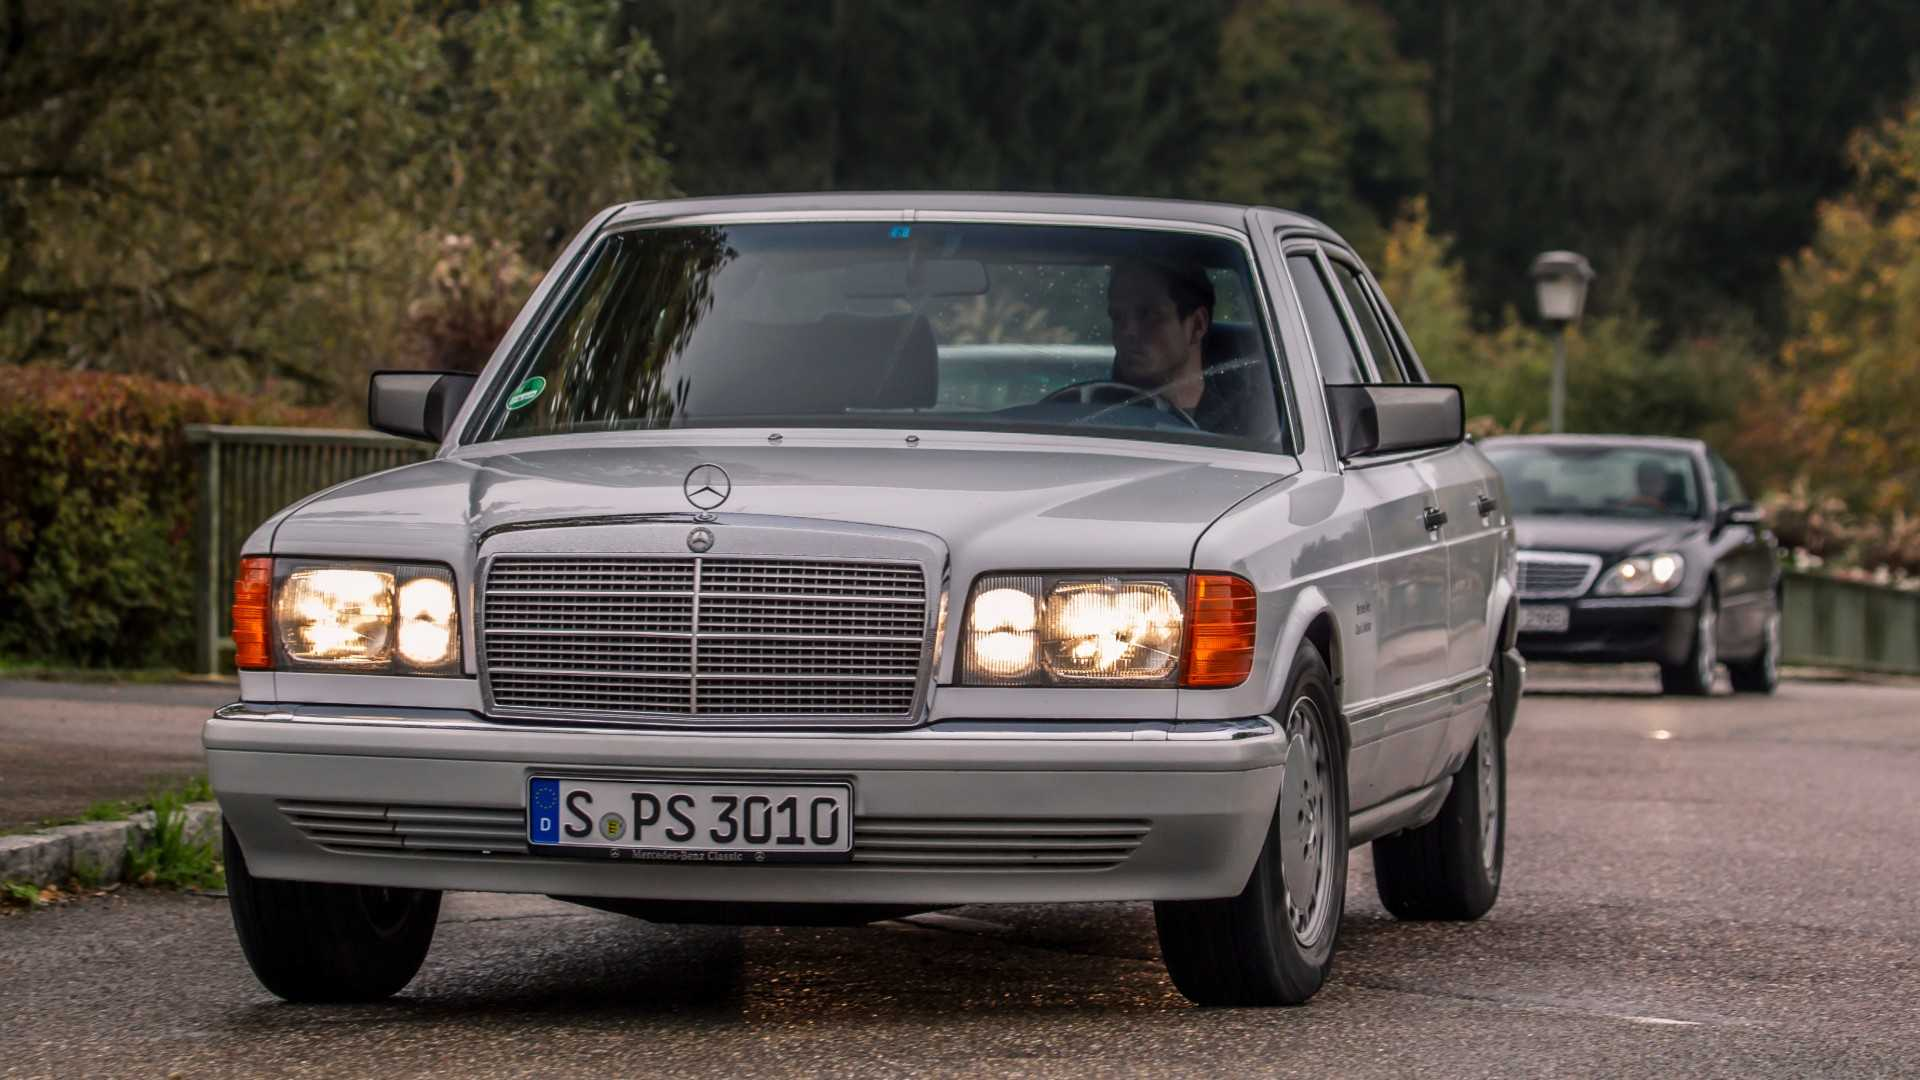 Celebrating 40 Years Of The W126 Mercedes-Benz S-Class | Motorious